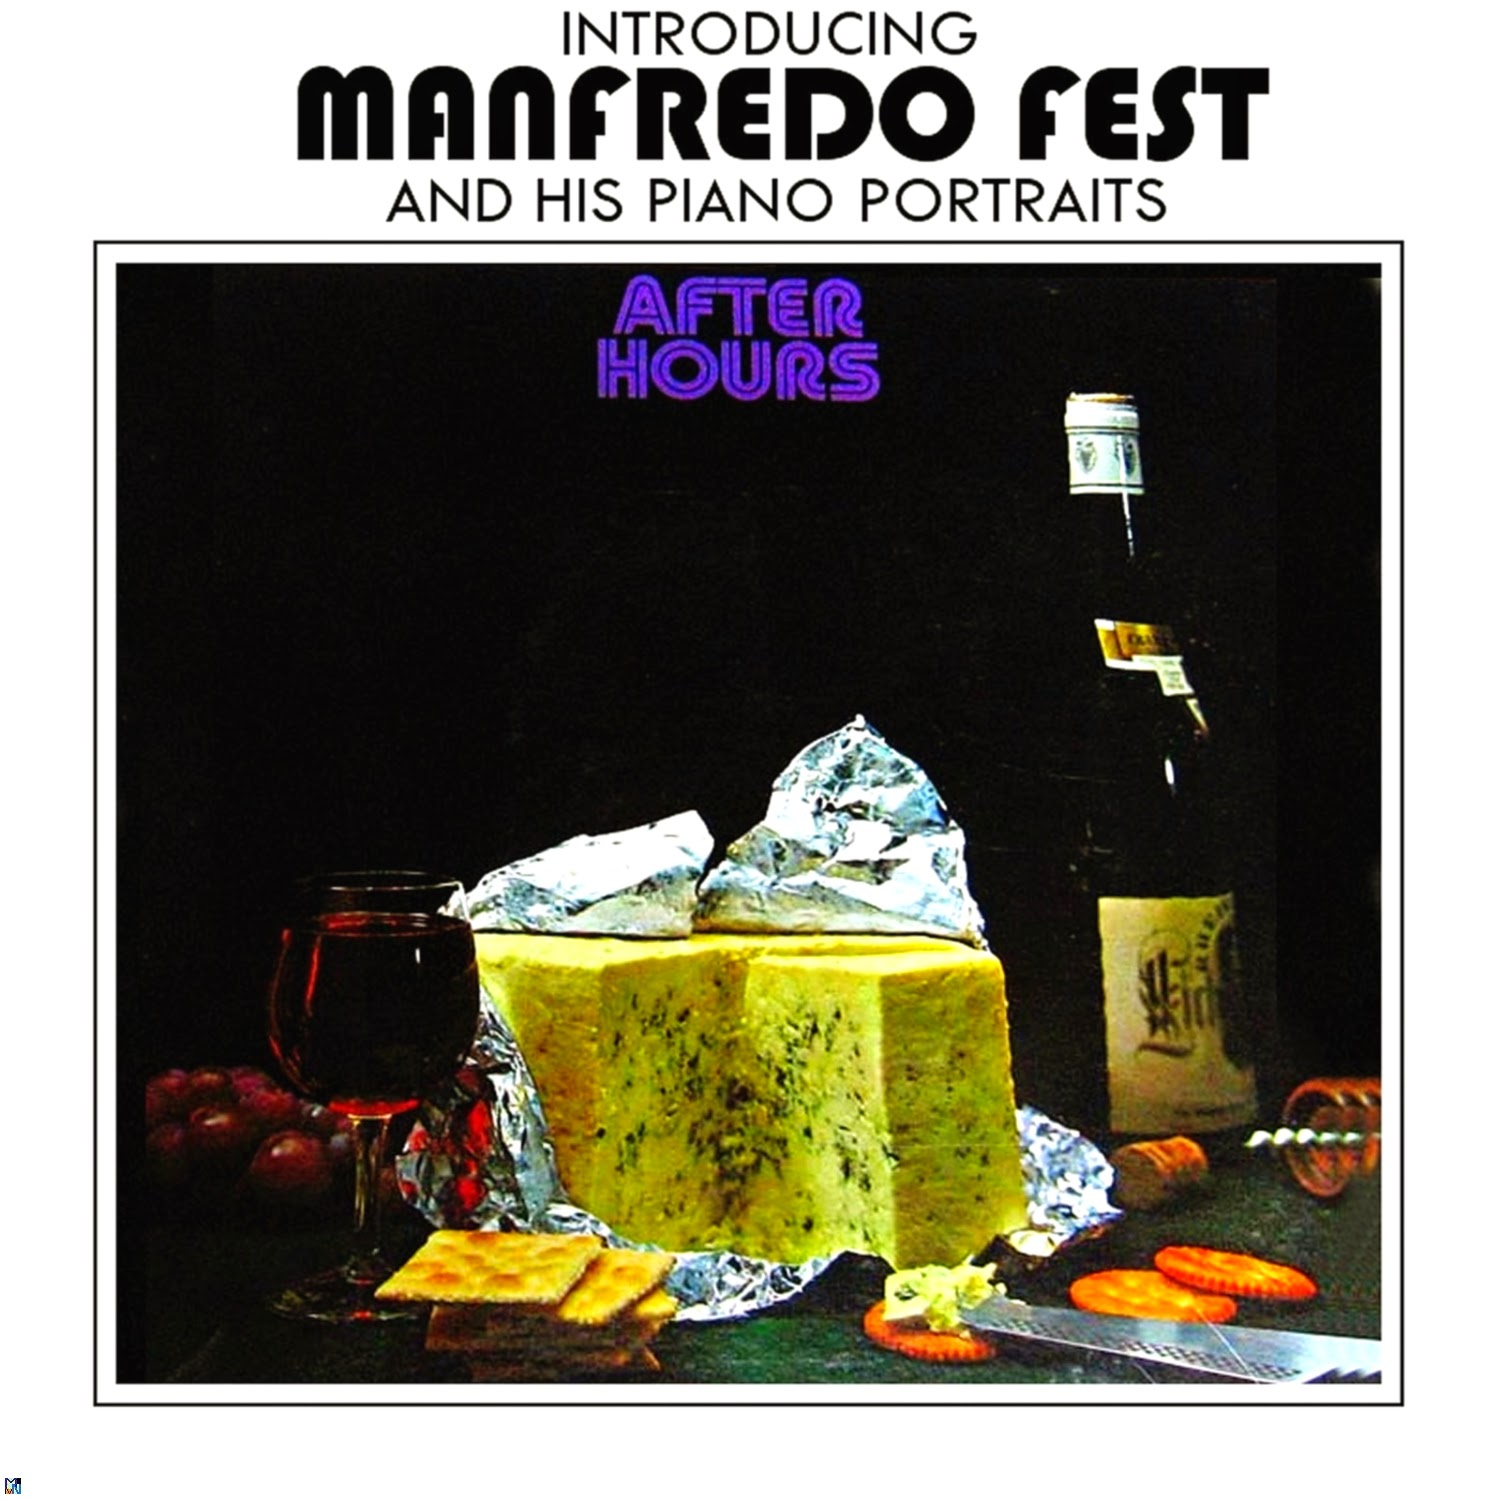 Manfredo Fest After Hours